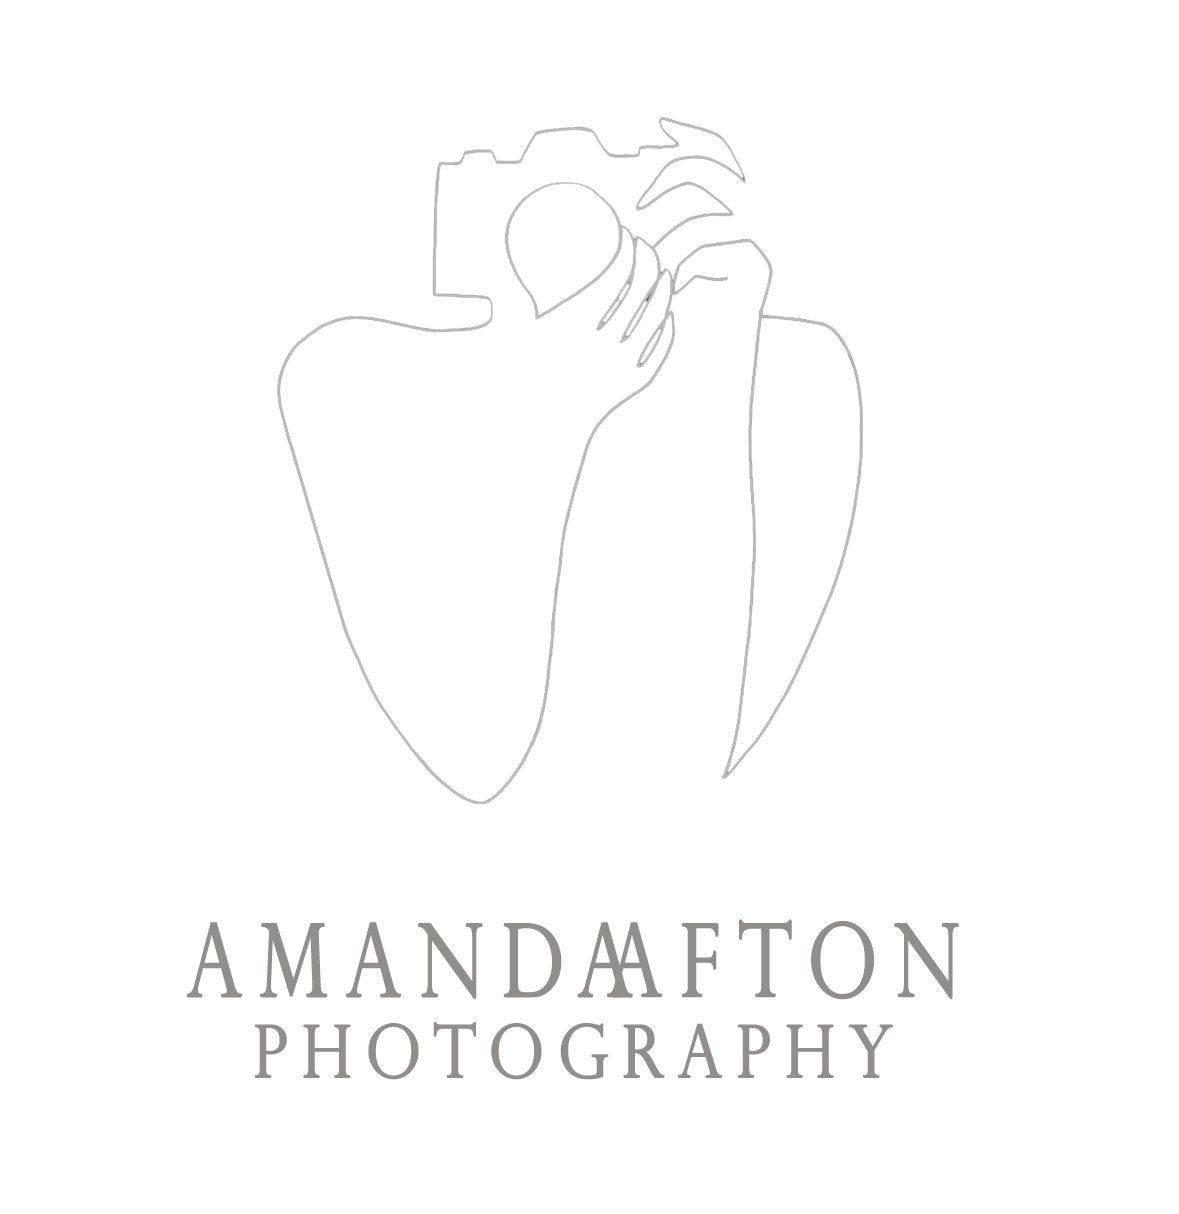 Amanda Afton Photography